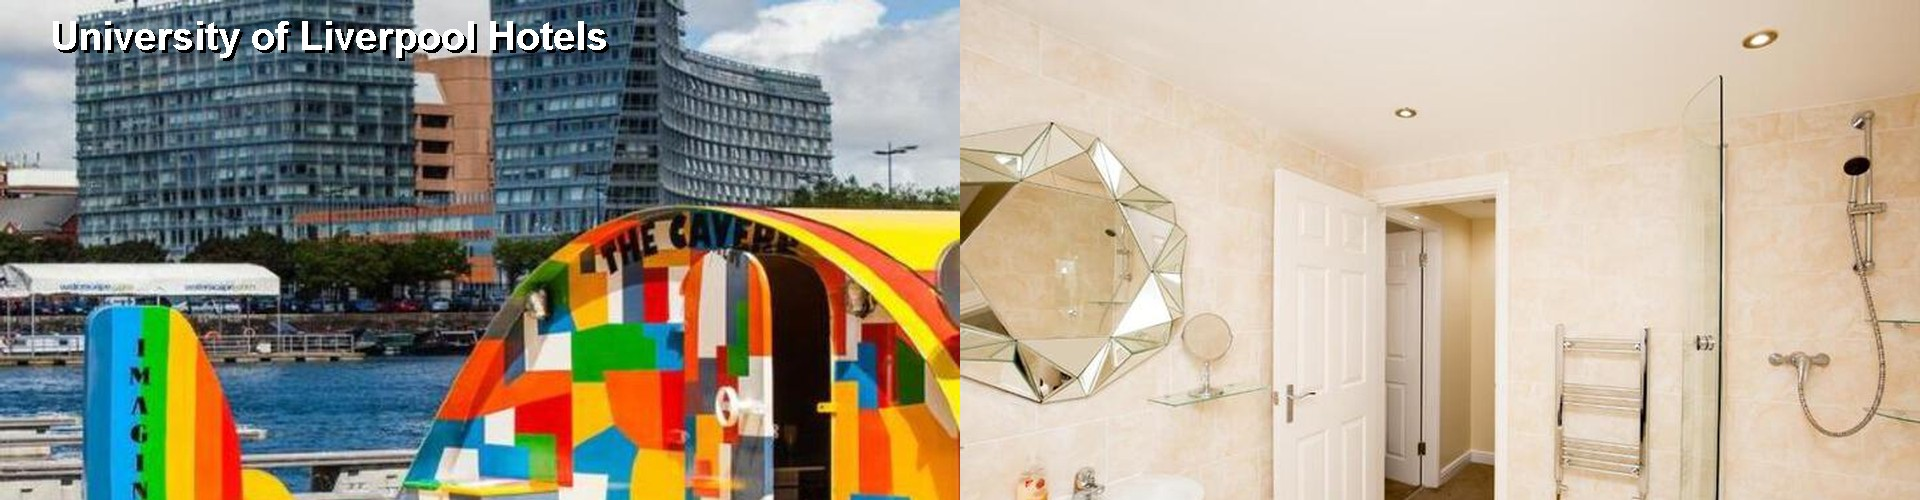 5 Best Hotels near University of Liverpool